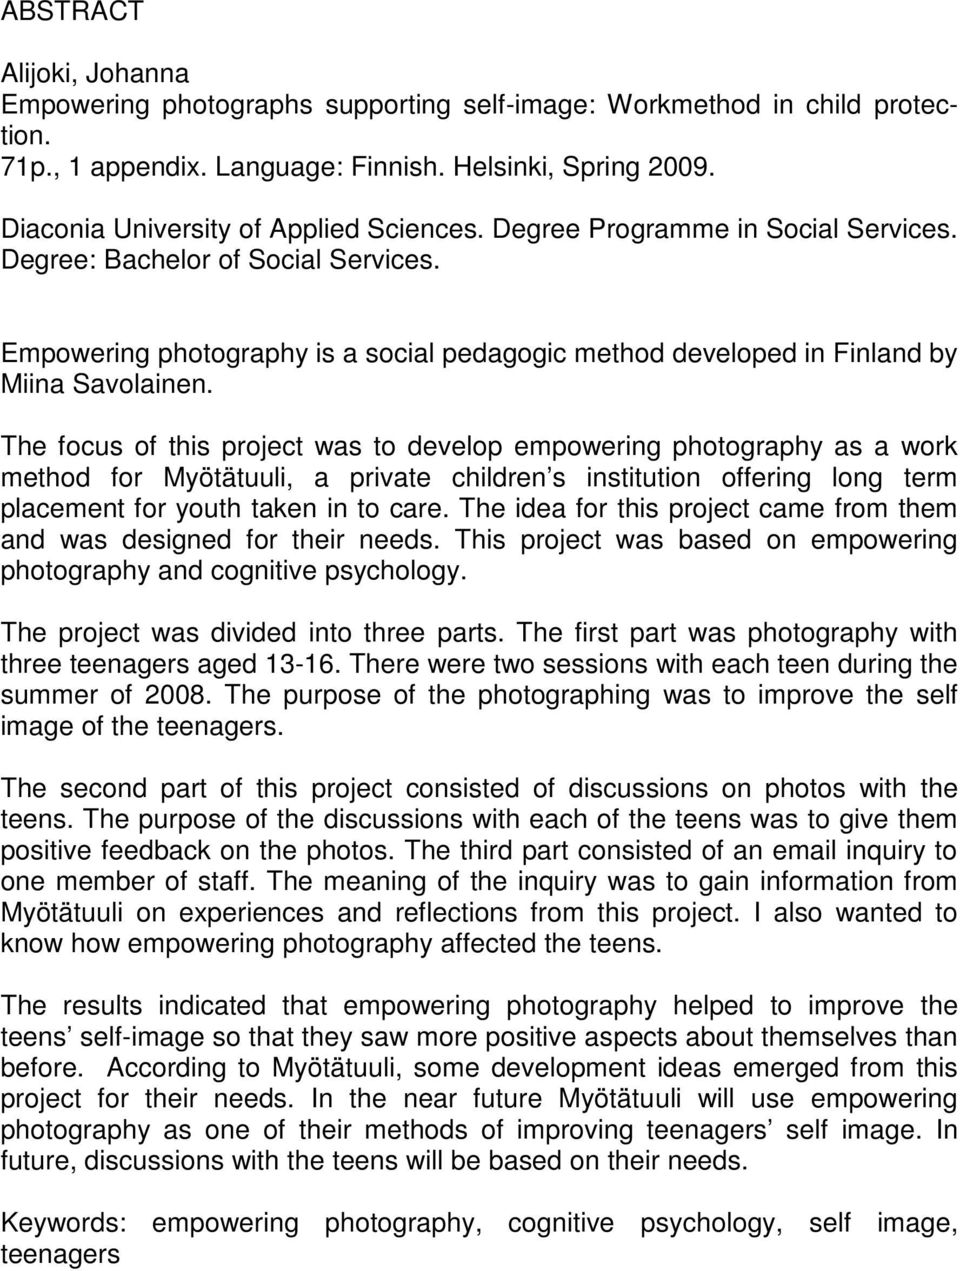 Empowering photography is a social pedagogic method developed in Finland by Miina Savolainen.